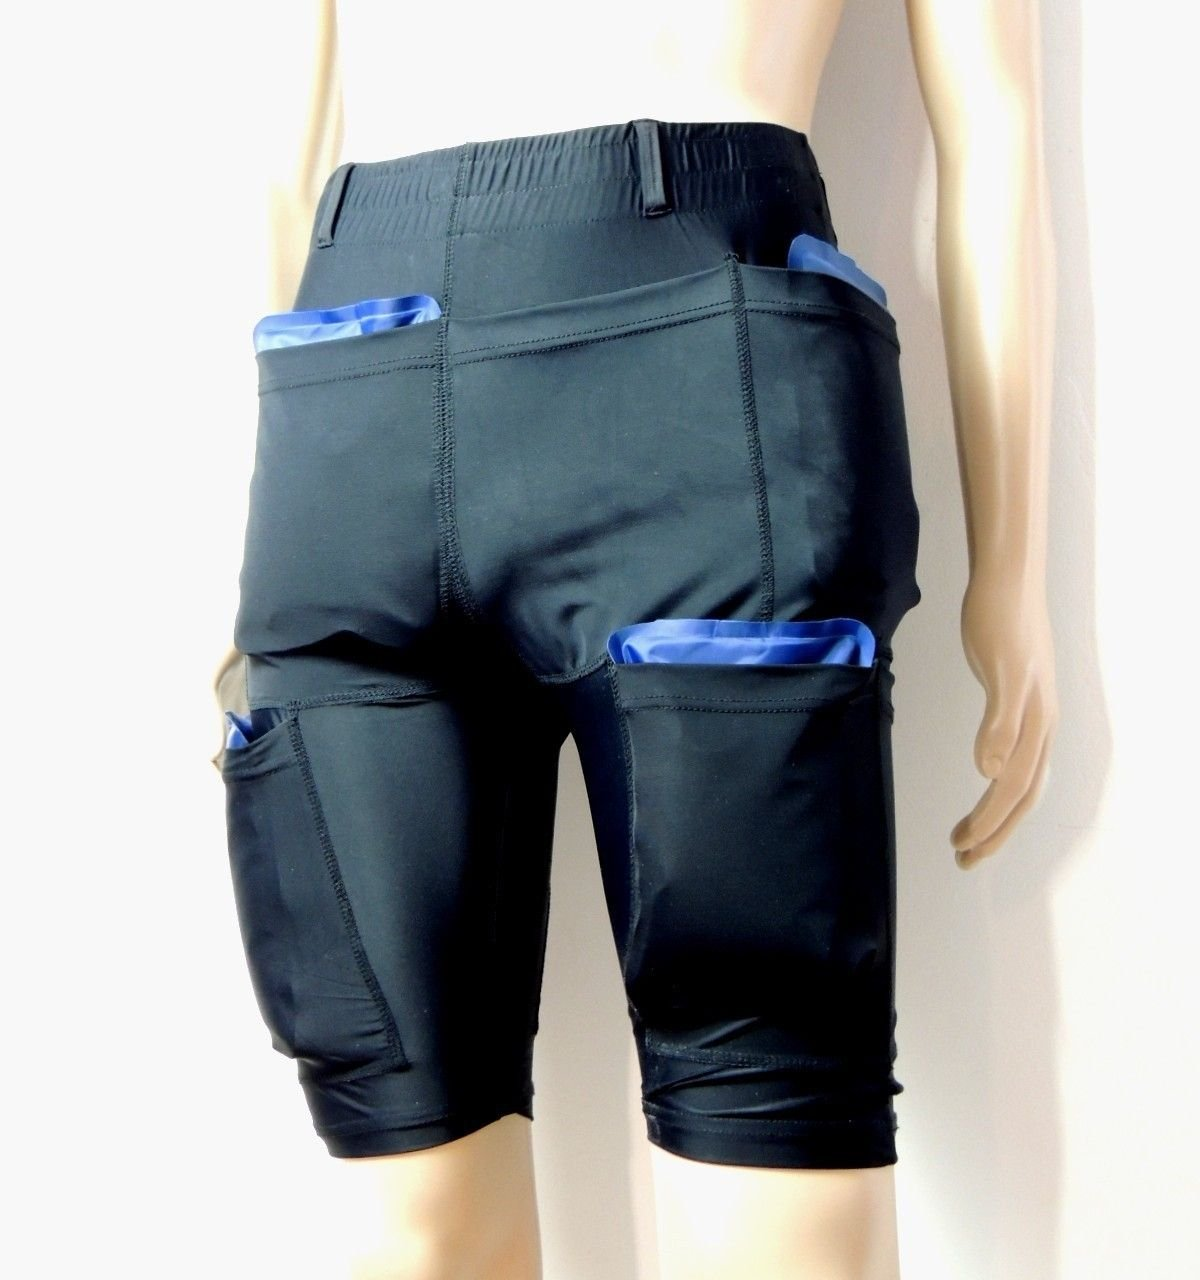 Burn Fat with Cold - Powerful Sliming Cooling Shorts 4800G - Size L - Ice Packs Not Included by Icinger Power